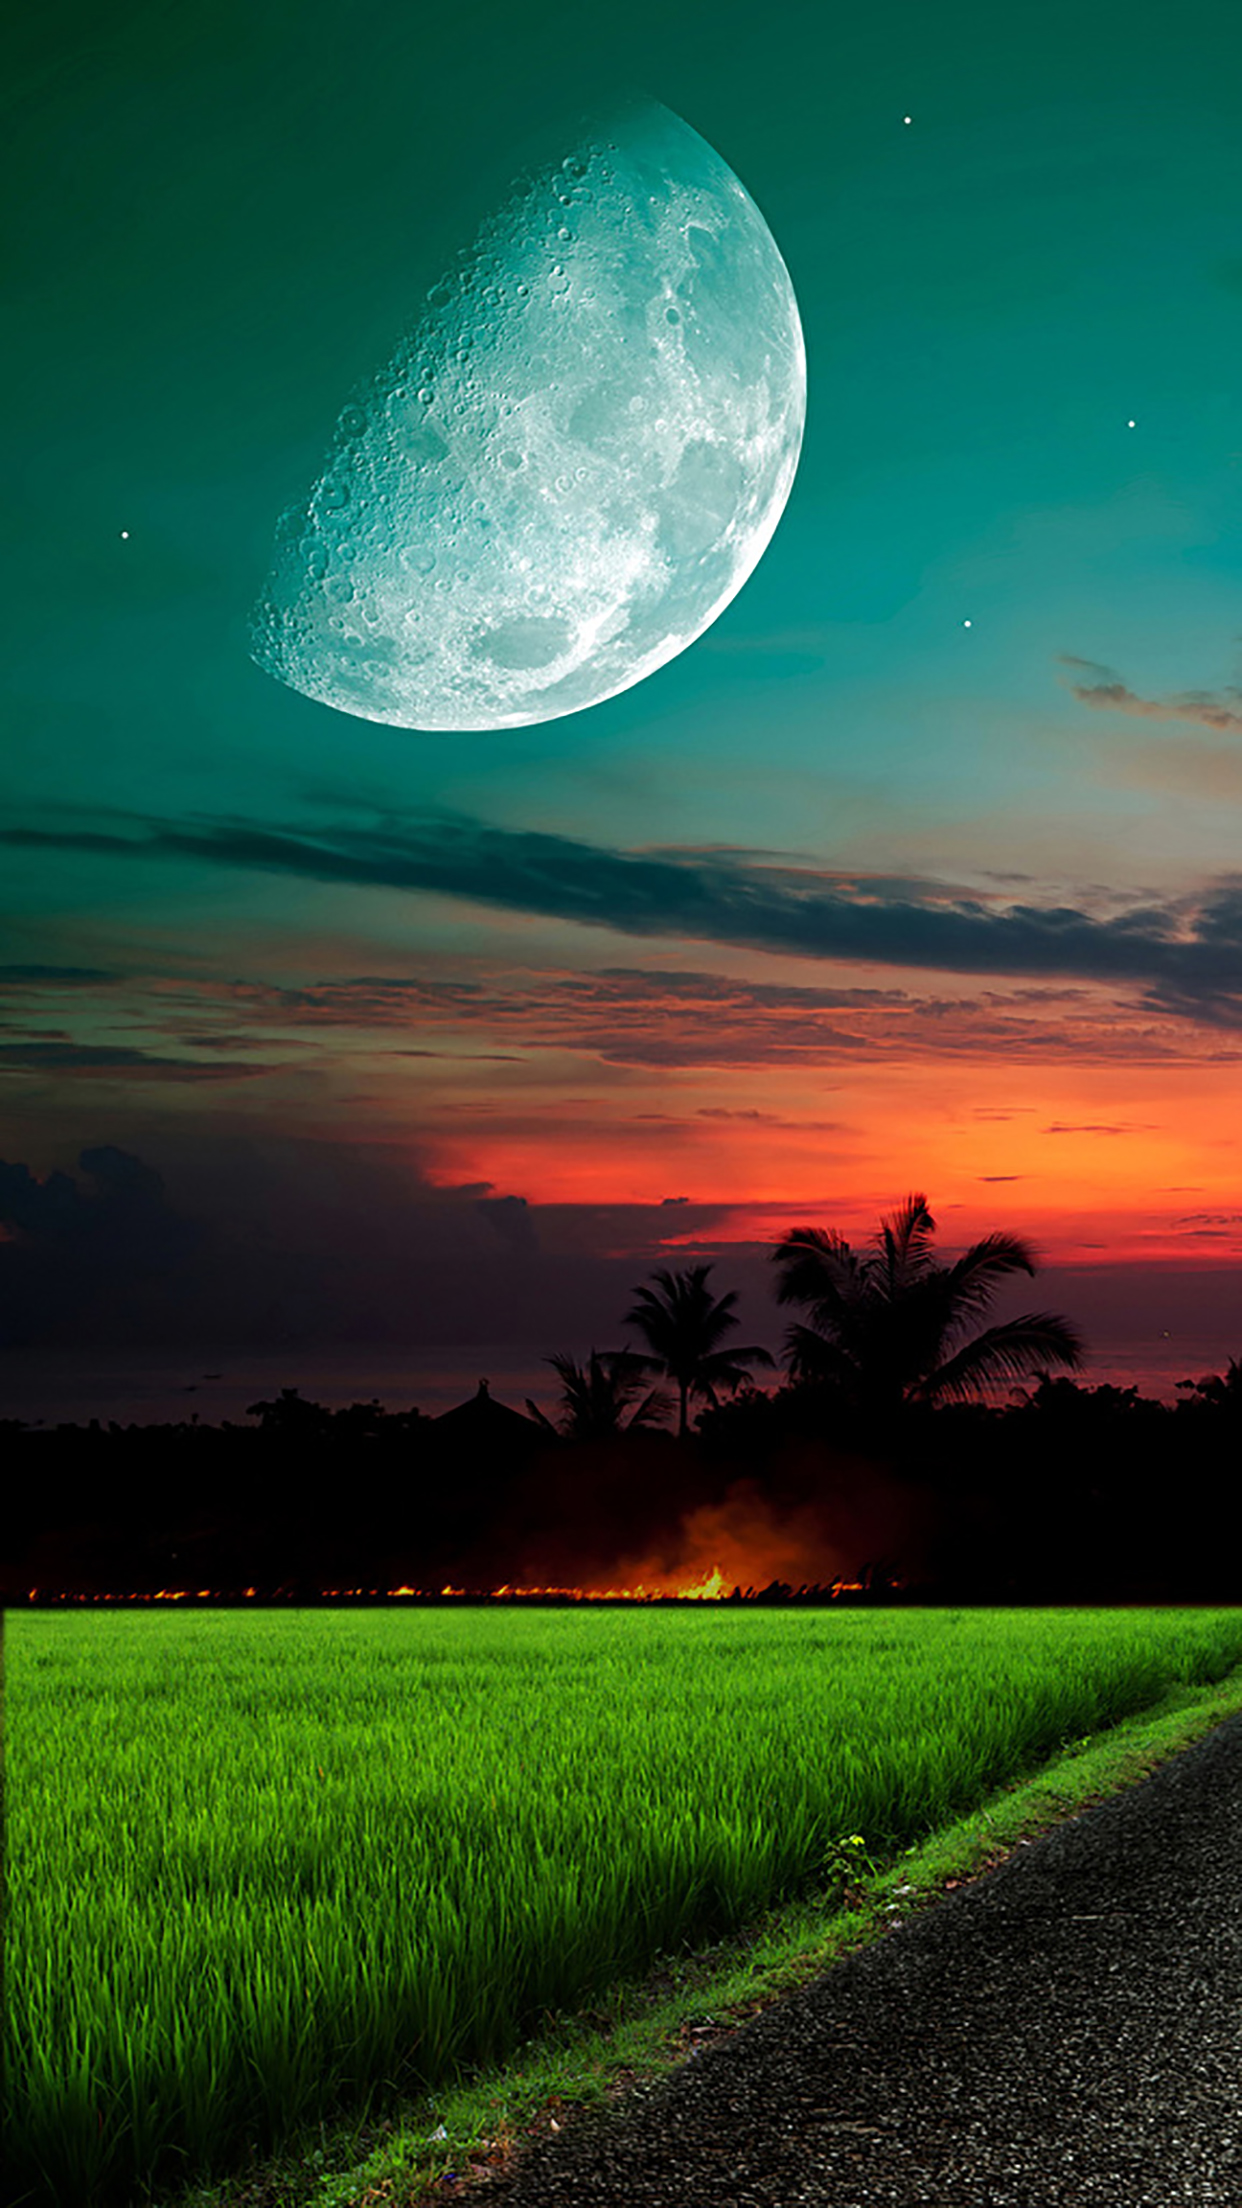 Moon And Sky Grass 3Wallpapers iPhone Parallax Moon And Sky : Grass